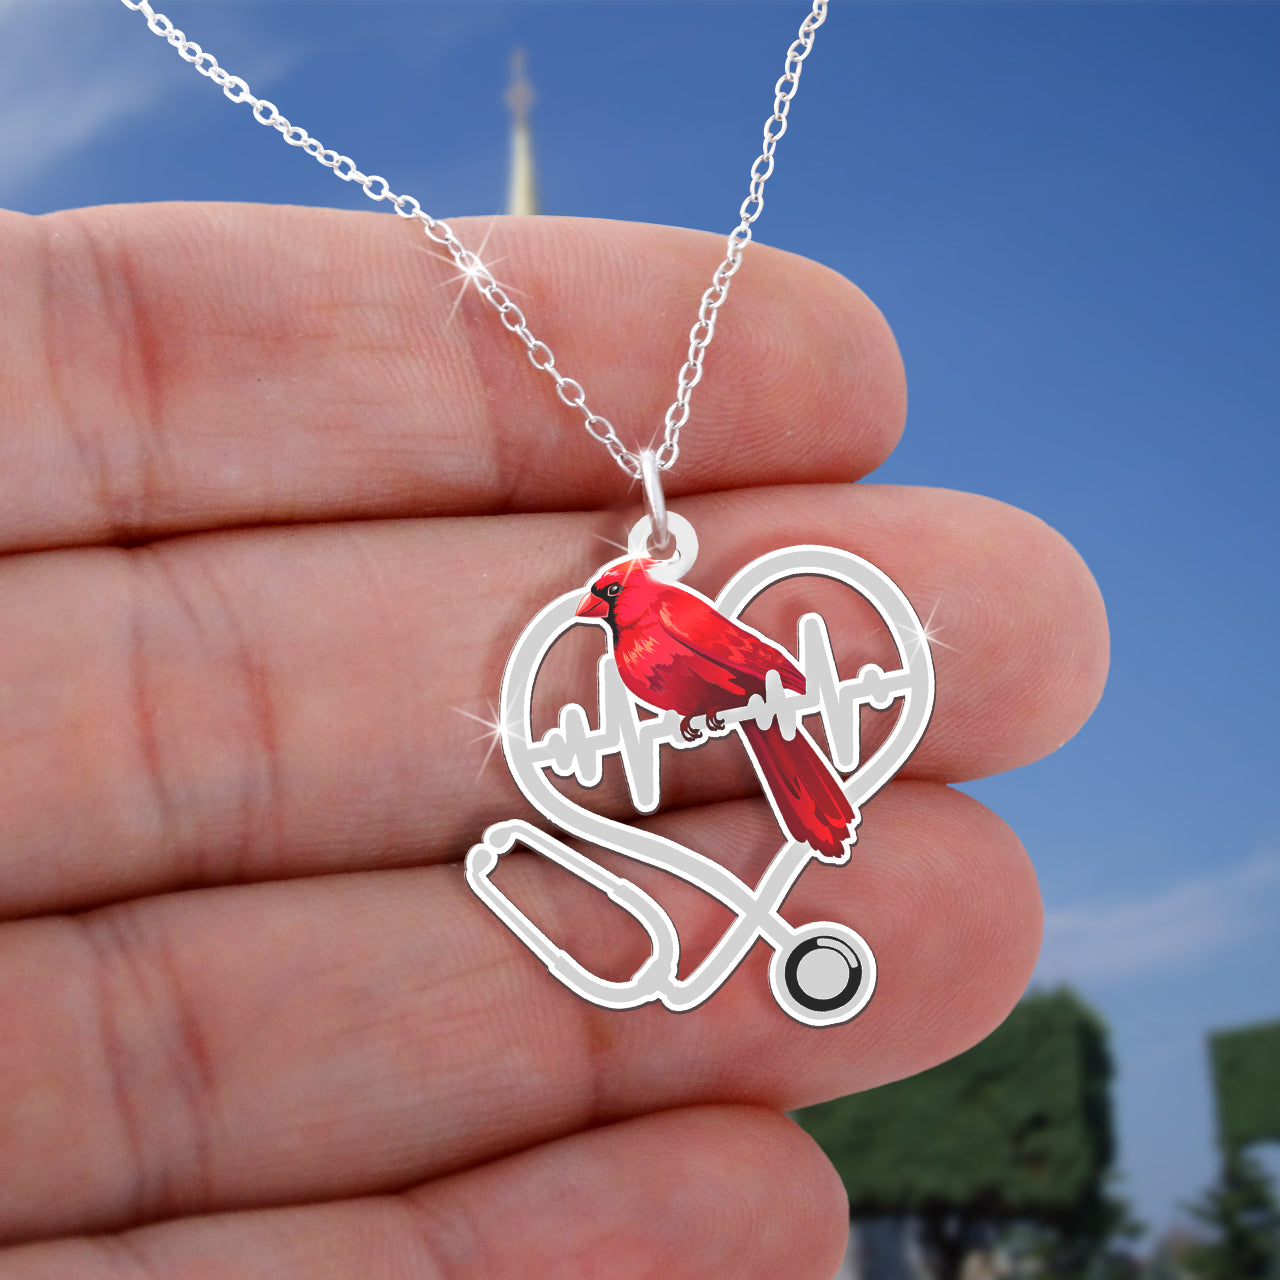 Cardinal Stethoscope Nurse Necklace